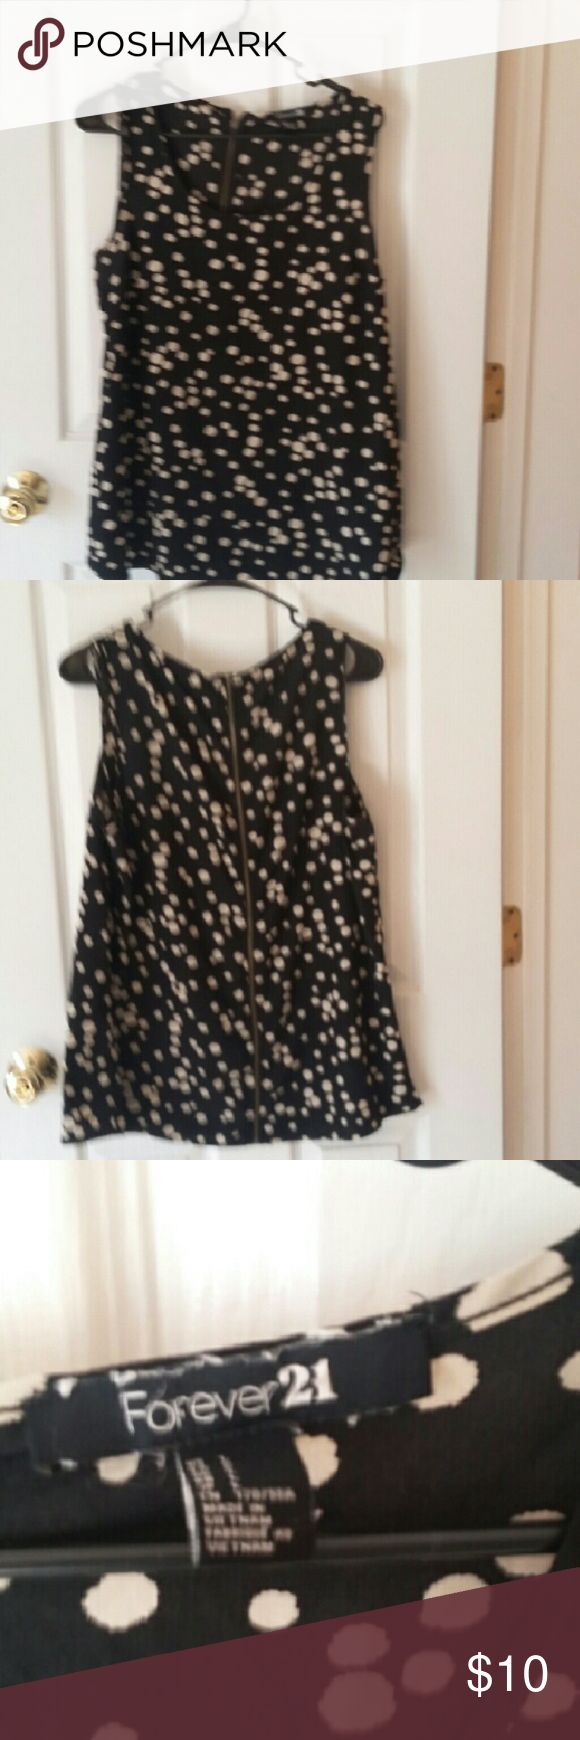 "Forever 21 sleeveless blouse. Forever 21, sleeveless blouse. Black with white  ""splotches"". Zipper down the back. Polyester.  EUC. Size Large.  Smoke-free home. Forever 21 Tops Blouses"